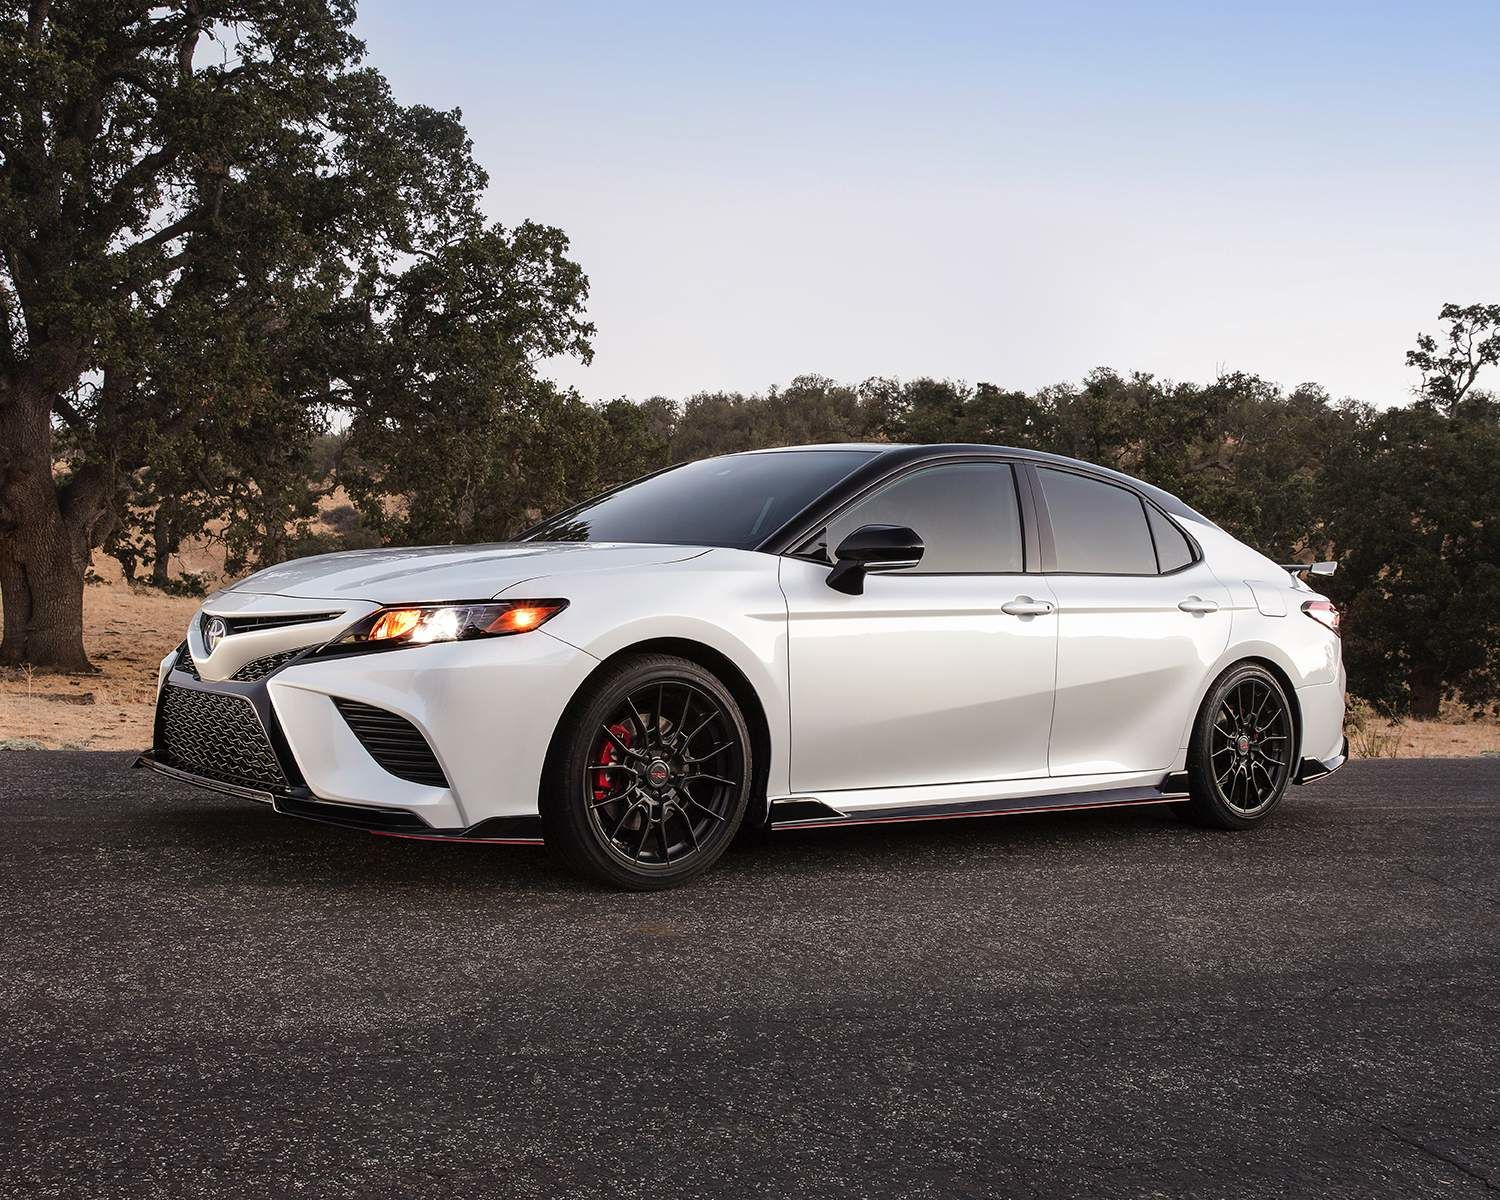 Camry TRD shown in Super White